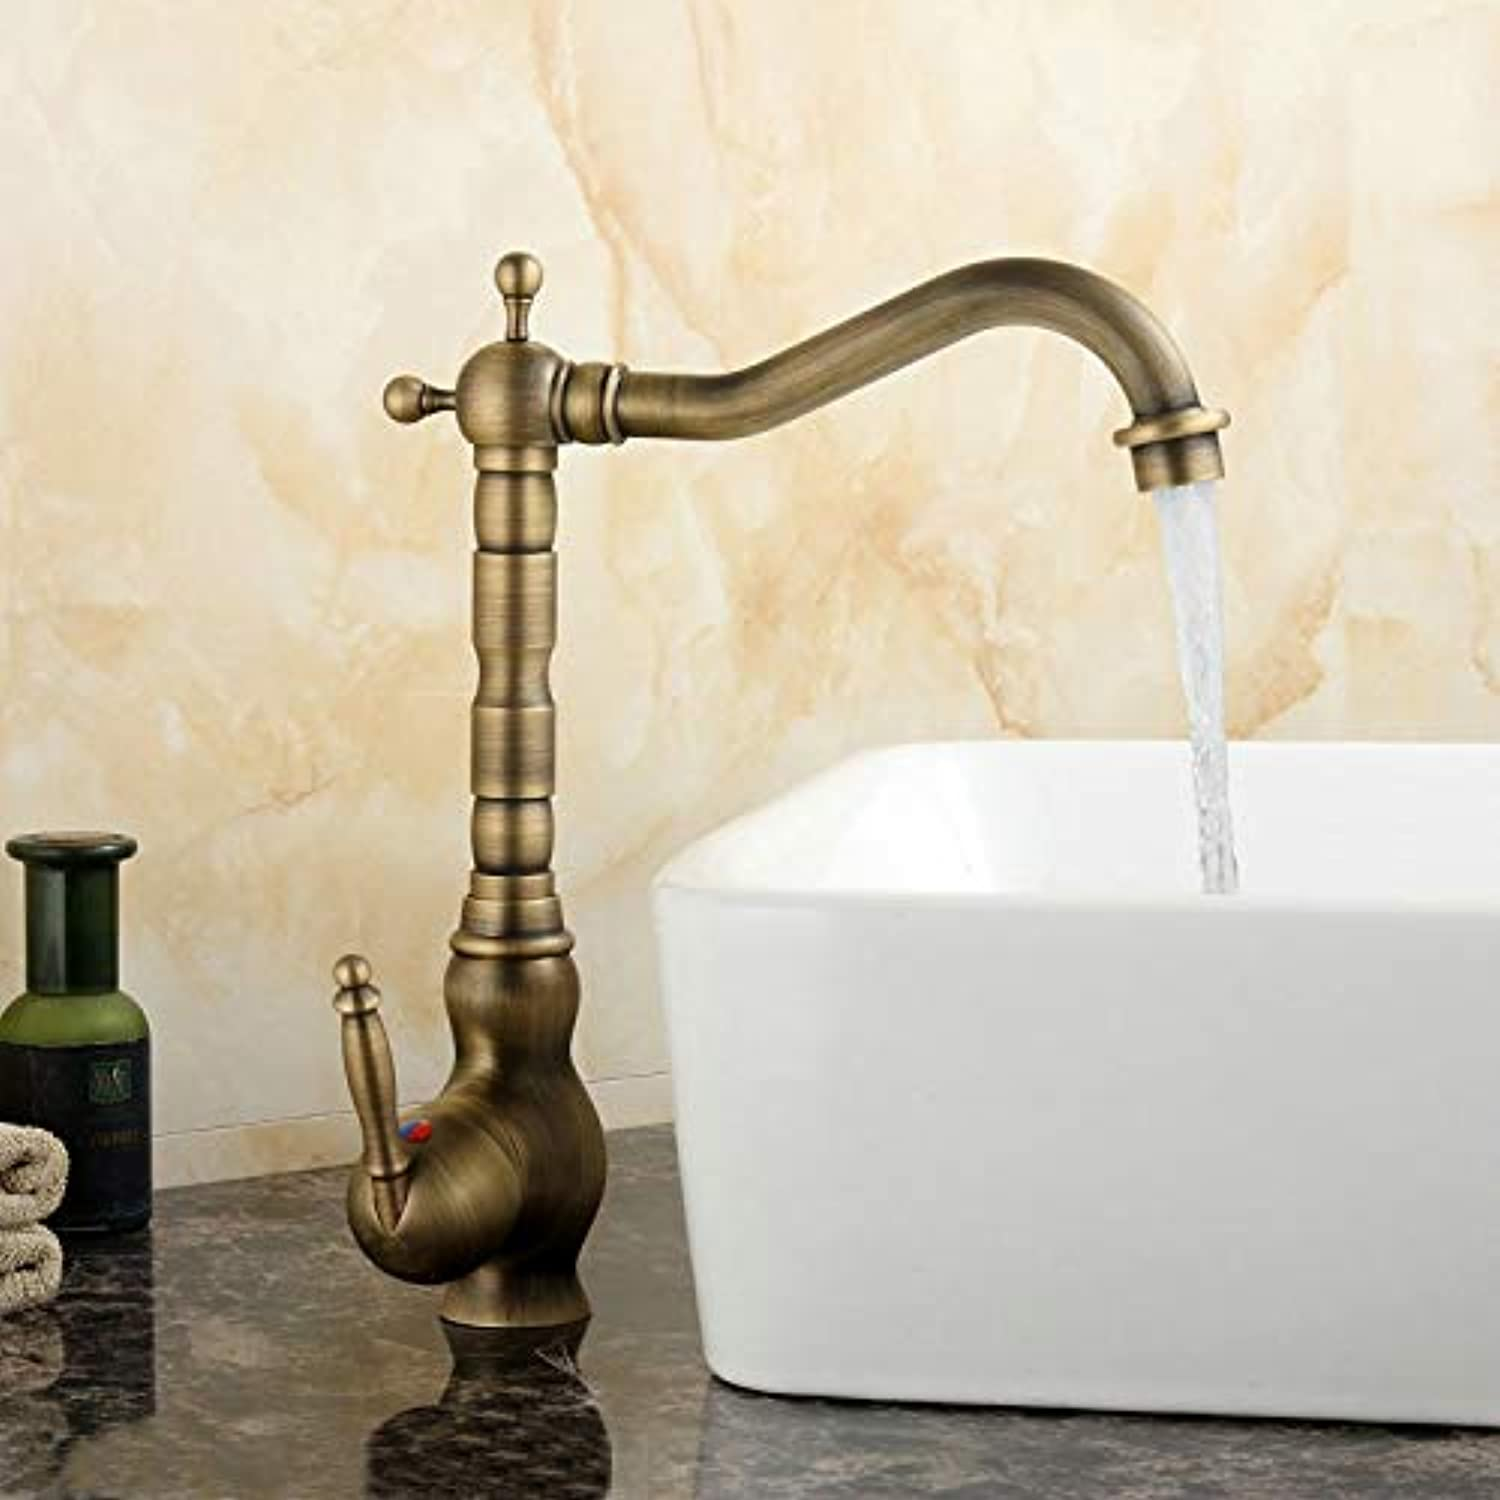 Decorry Kitchen Faucets Brass Basin Mixer Tap Antique Brushed 360 Swivel Faucet 502A